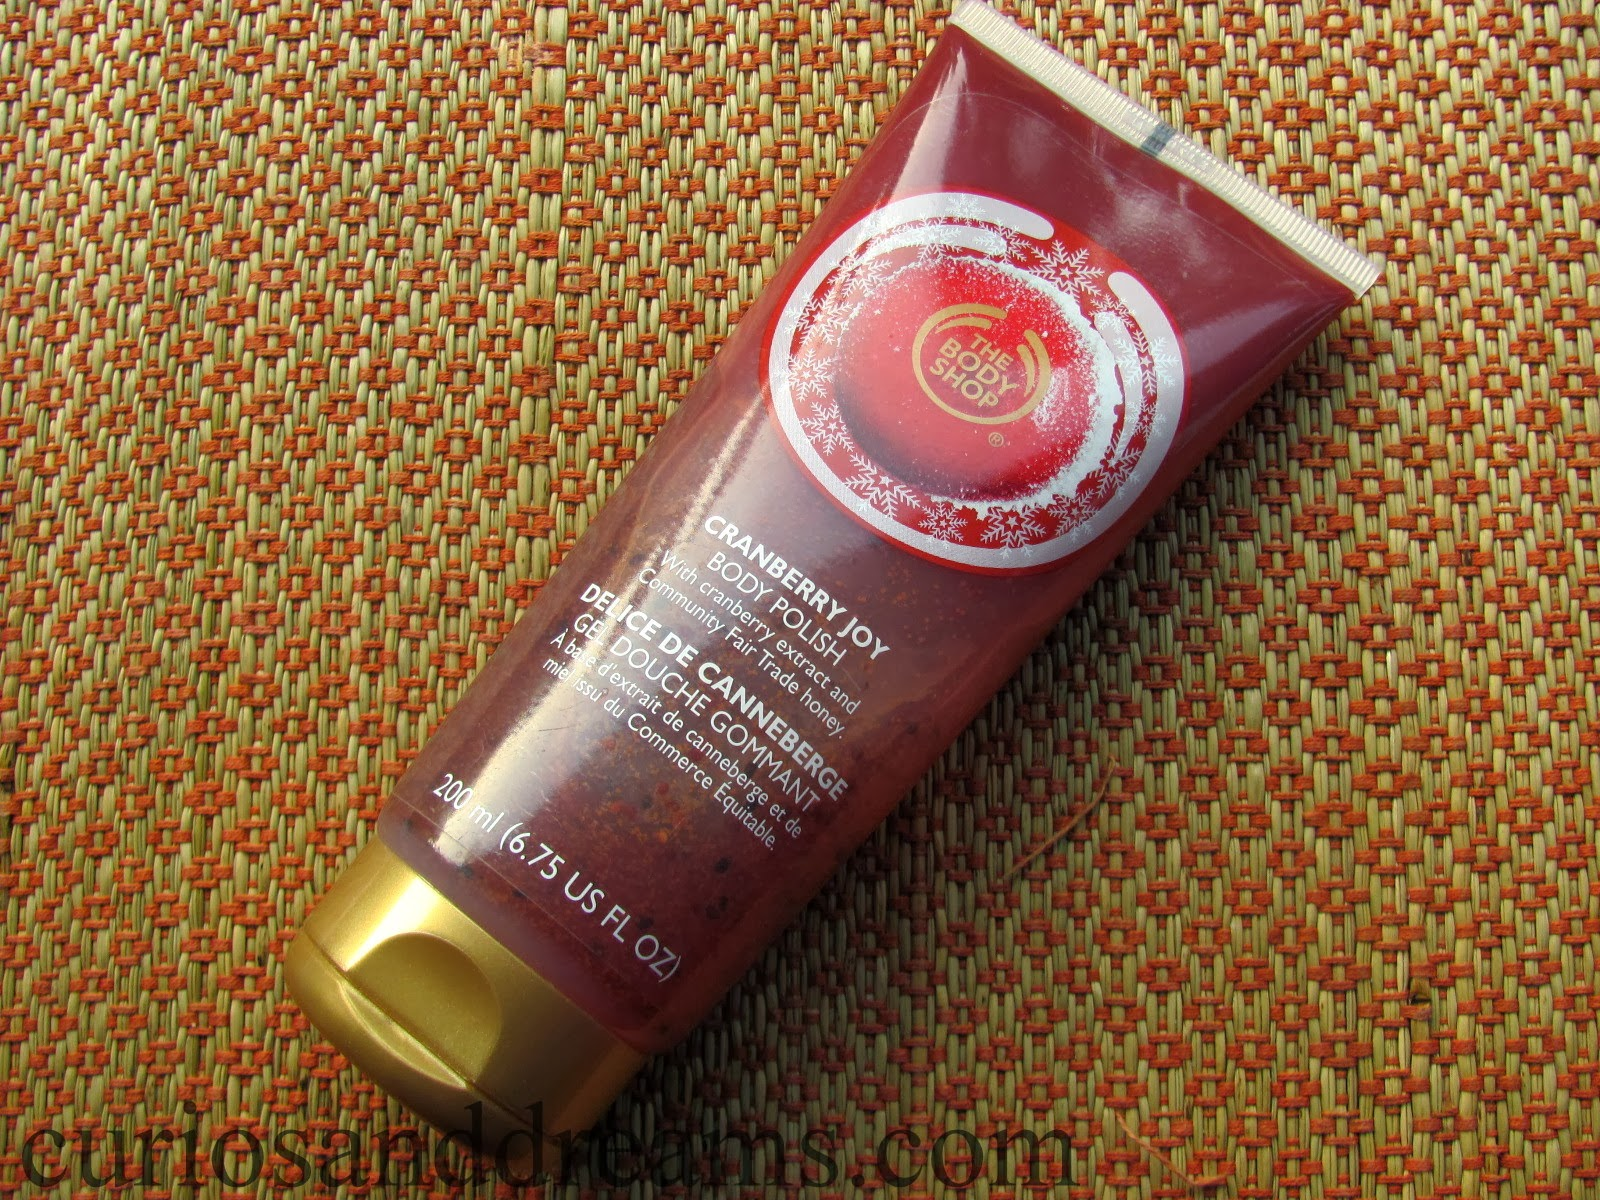 the body shop cranberry joy body polish, the body shop cranberry joy body polish review